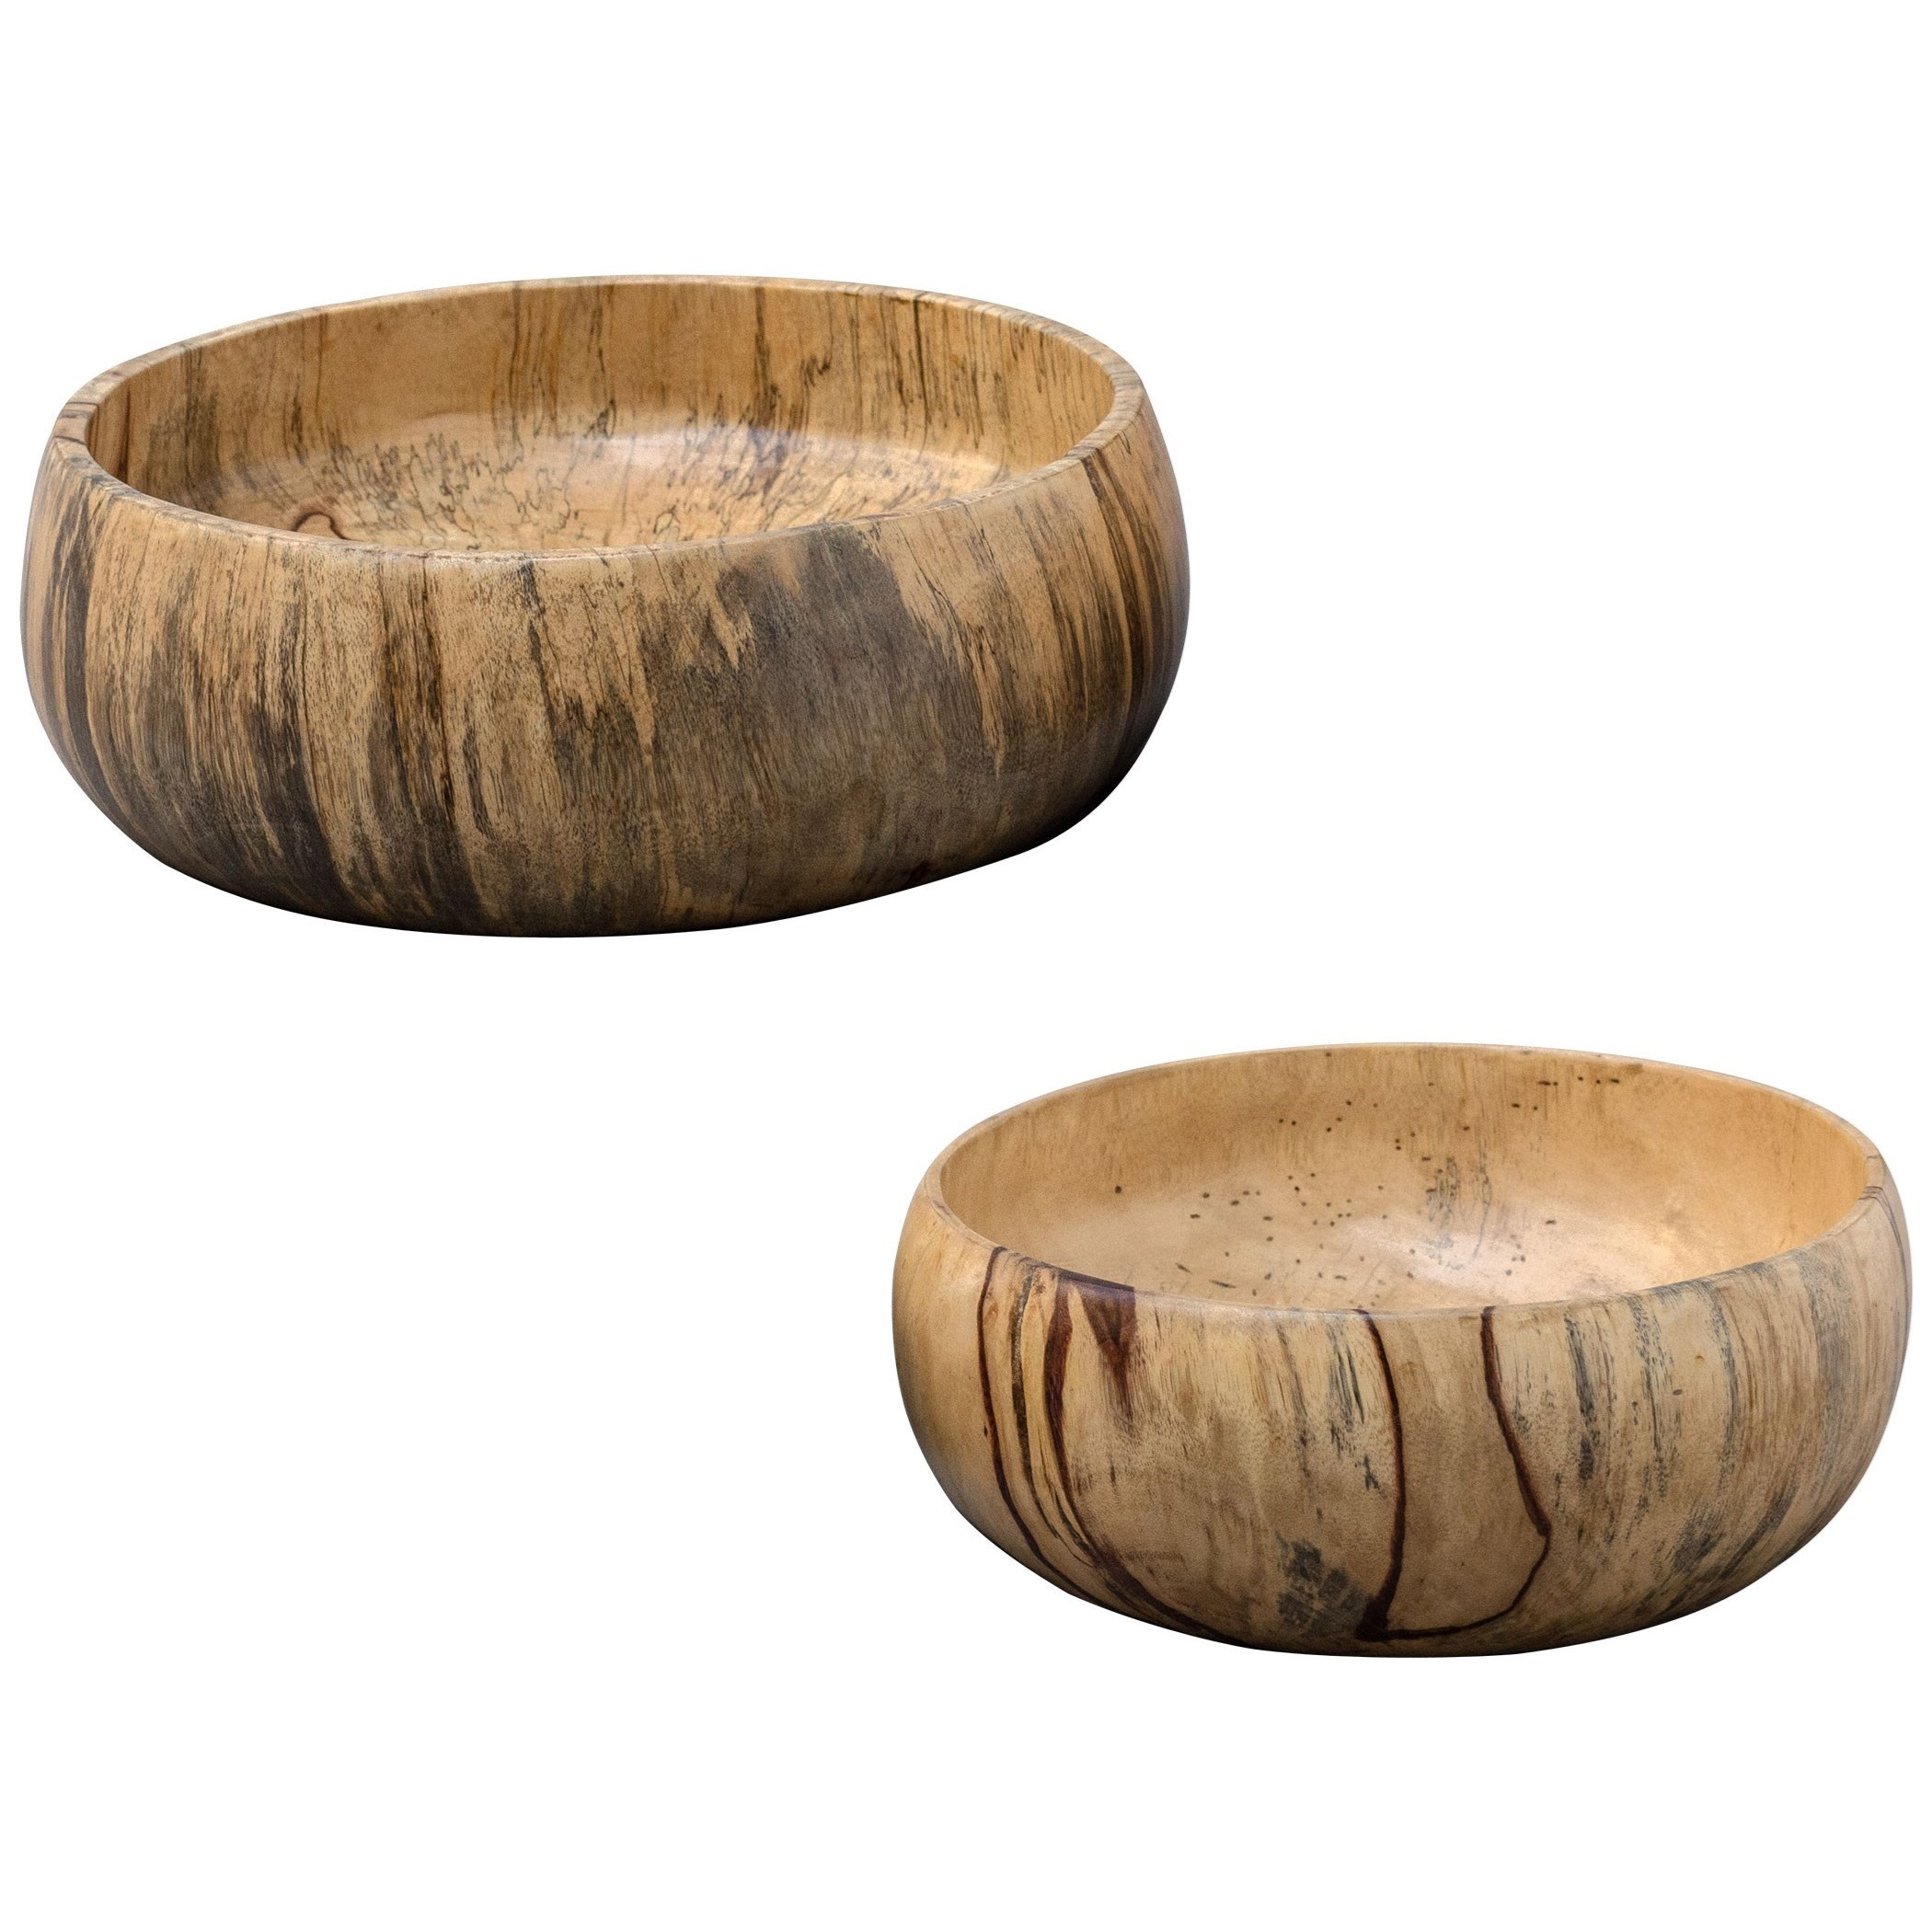 Accessories Tamarind Wood Bowls, S/2 by Uttermost at Dunk & Bright Furniture